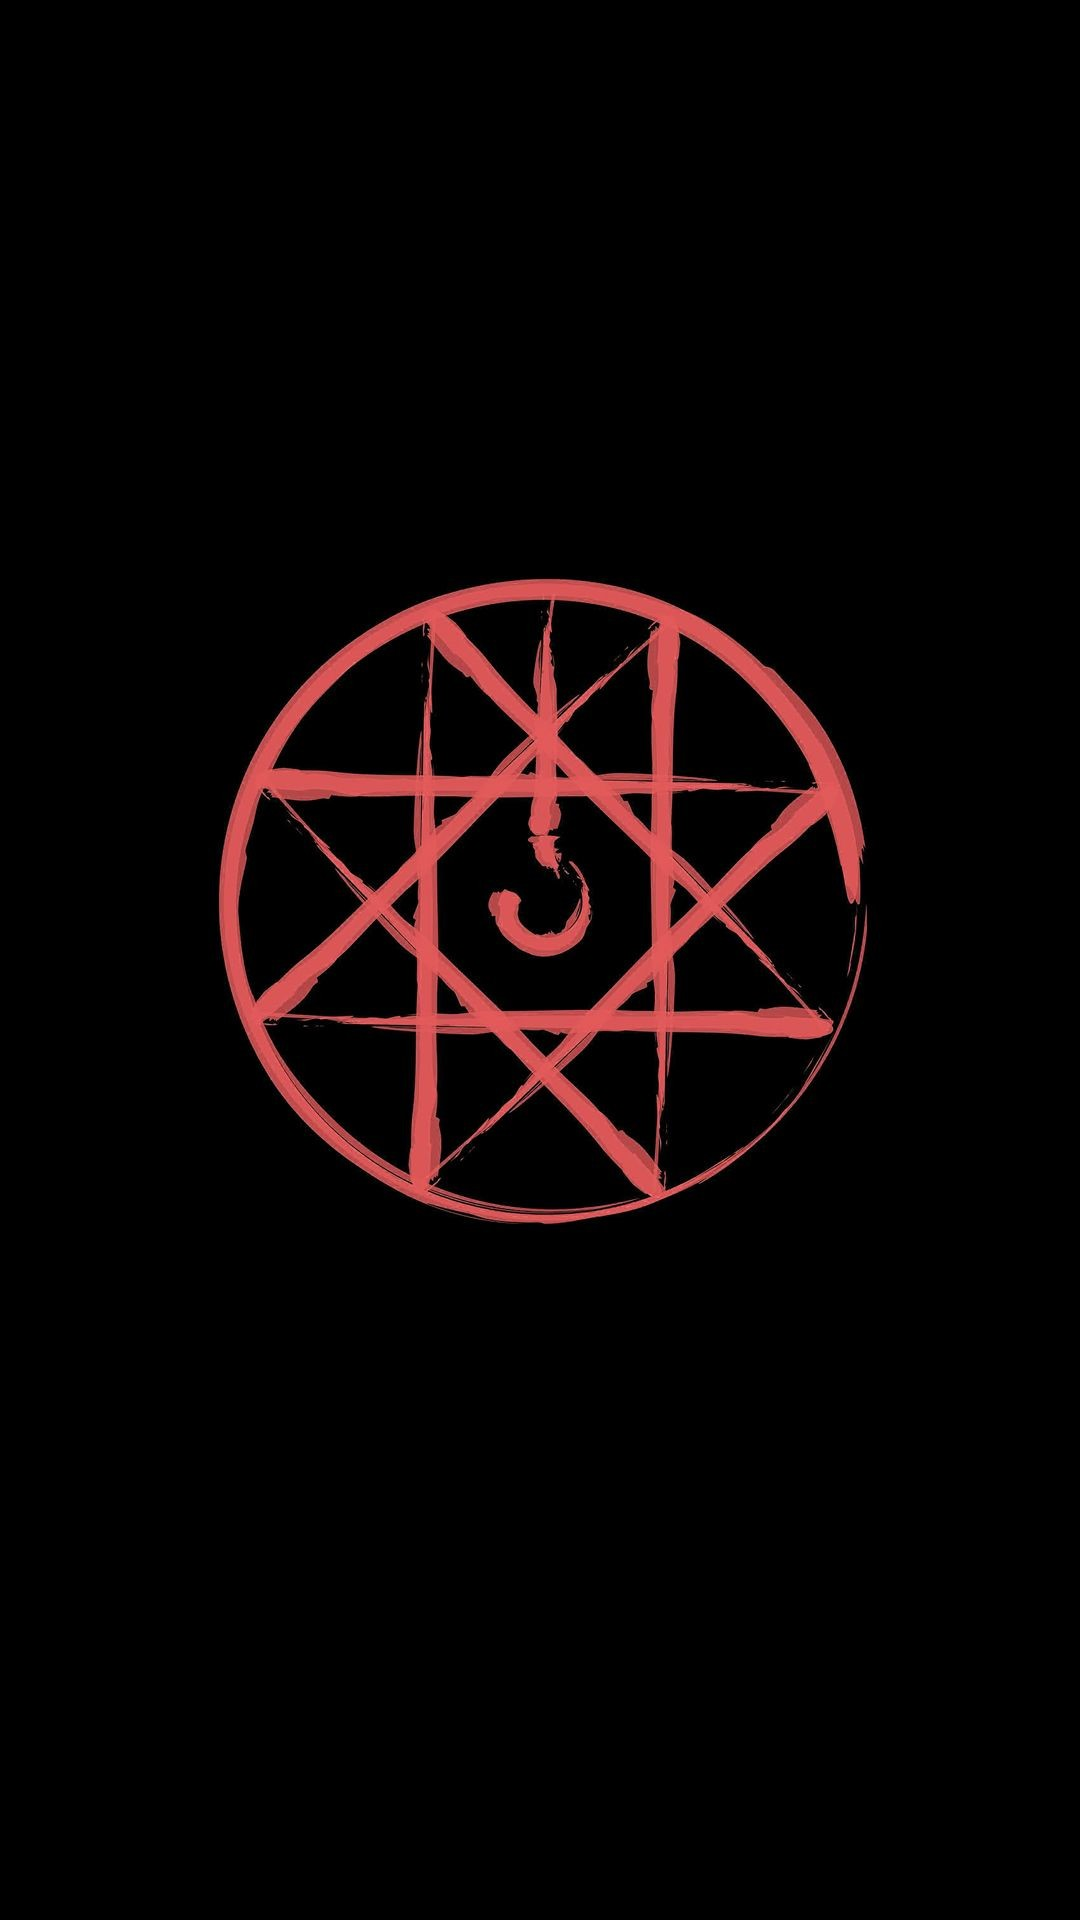 Transmutation Circle Wallpaper Posted By Ethan Tremblay